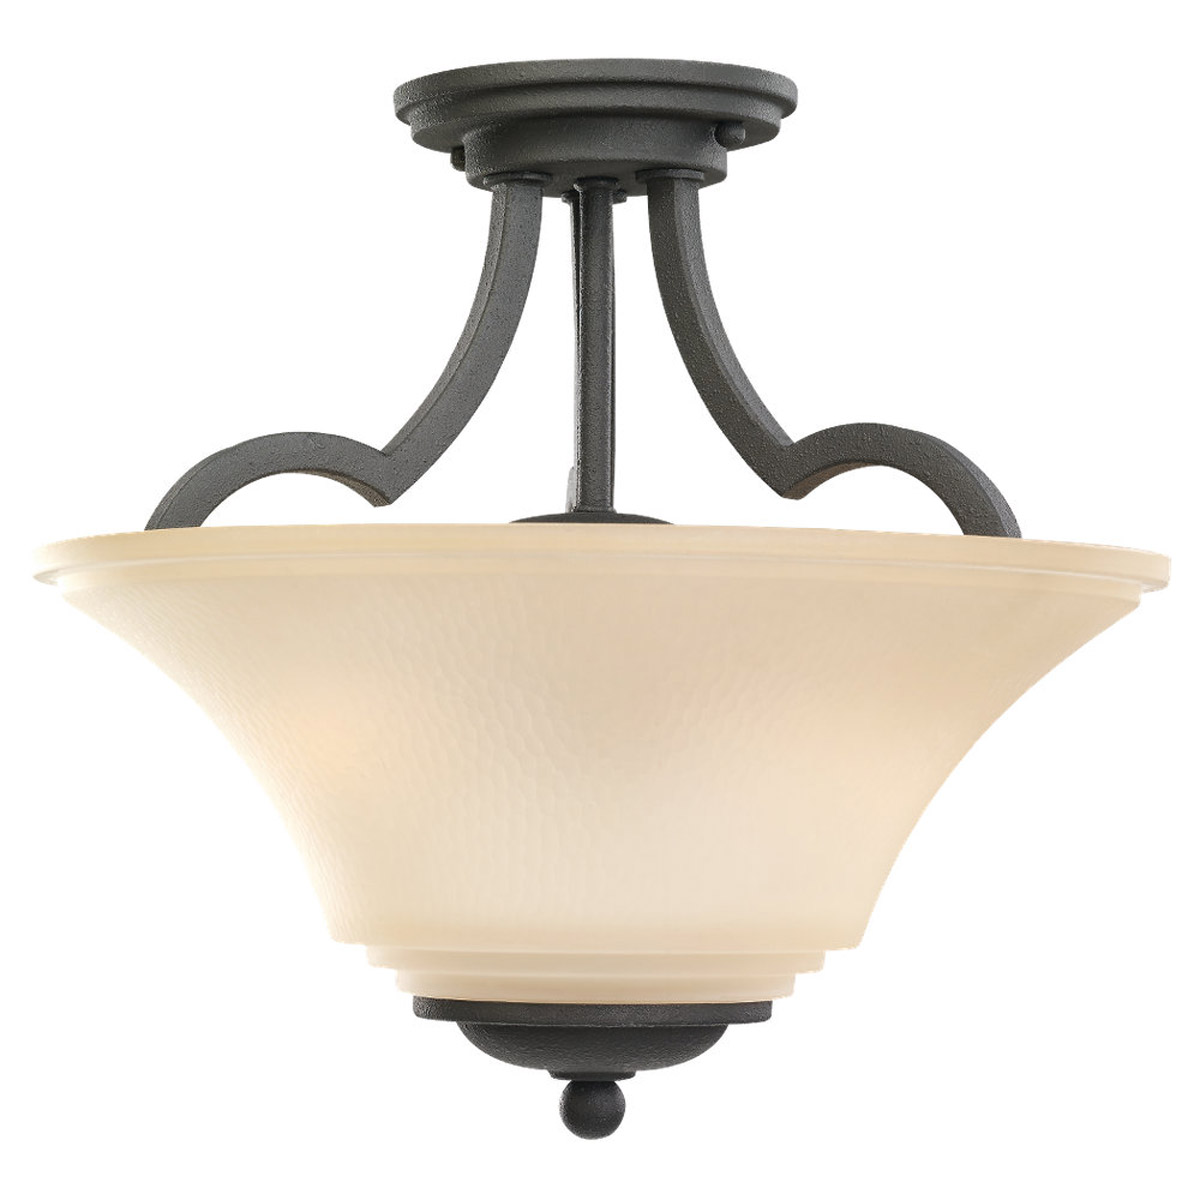 Sea Gull Somerton 2 Light Semi-Flush Convertible Pendant in Blacksmith 77375BLE-839